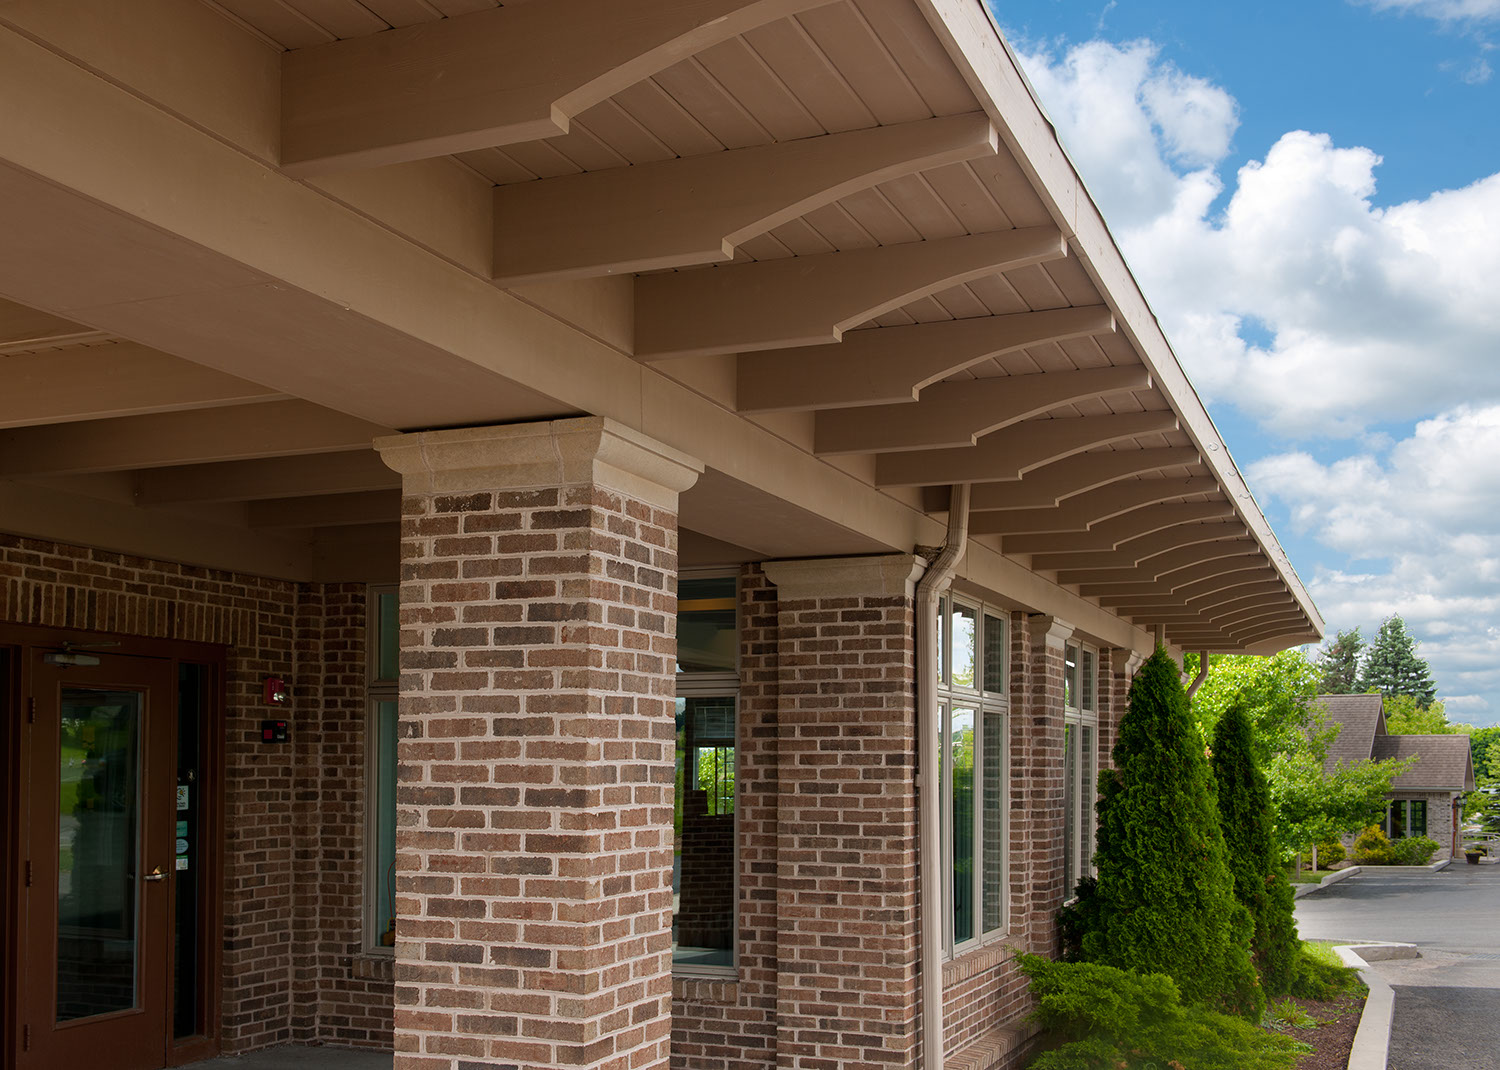 Commercial-Builders-deep-creek-lake-RegionalEyeAssociates-02.jpg